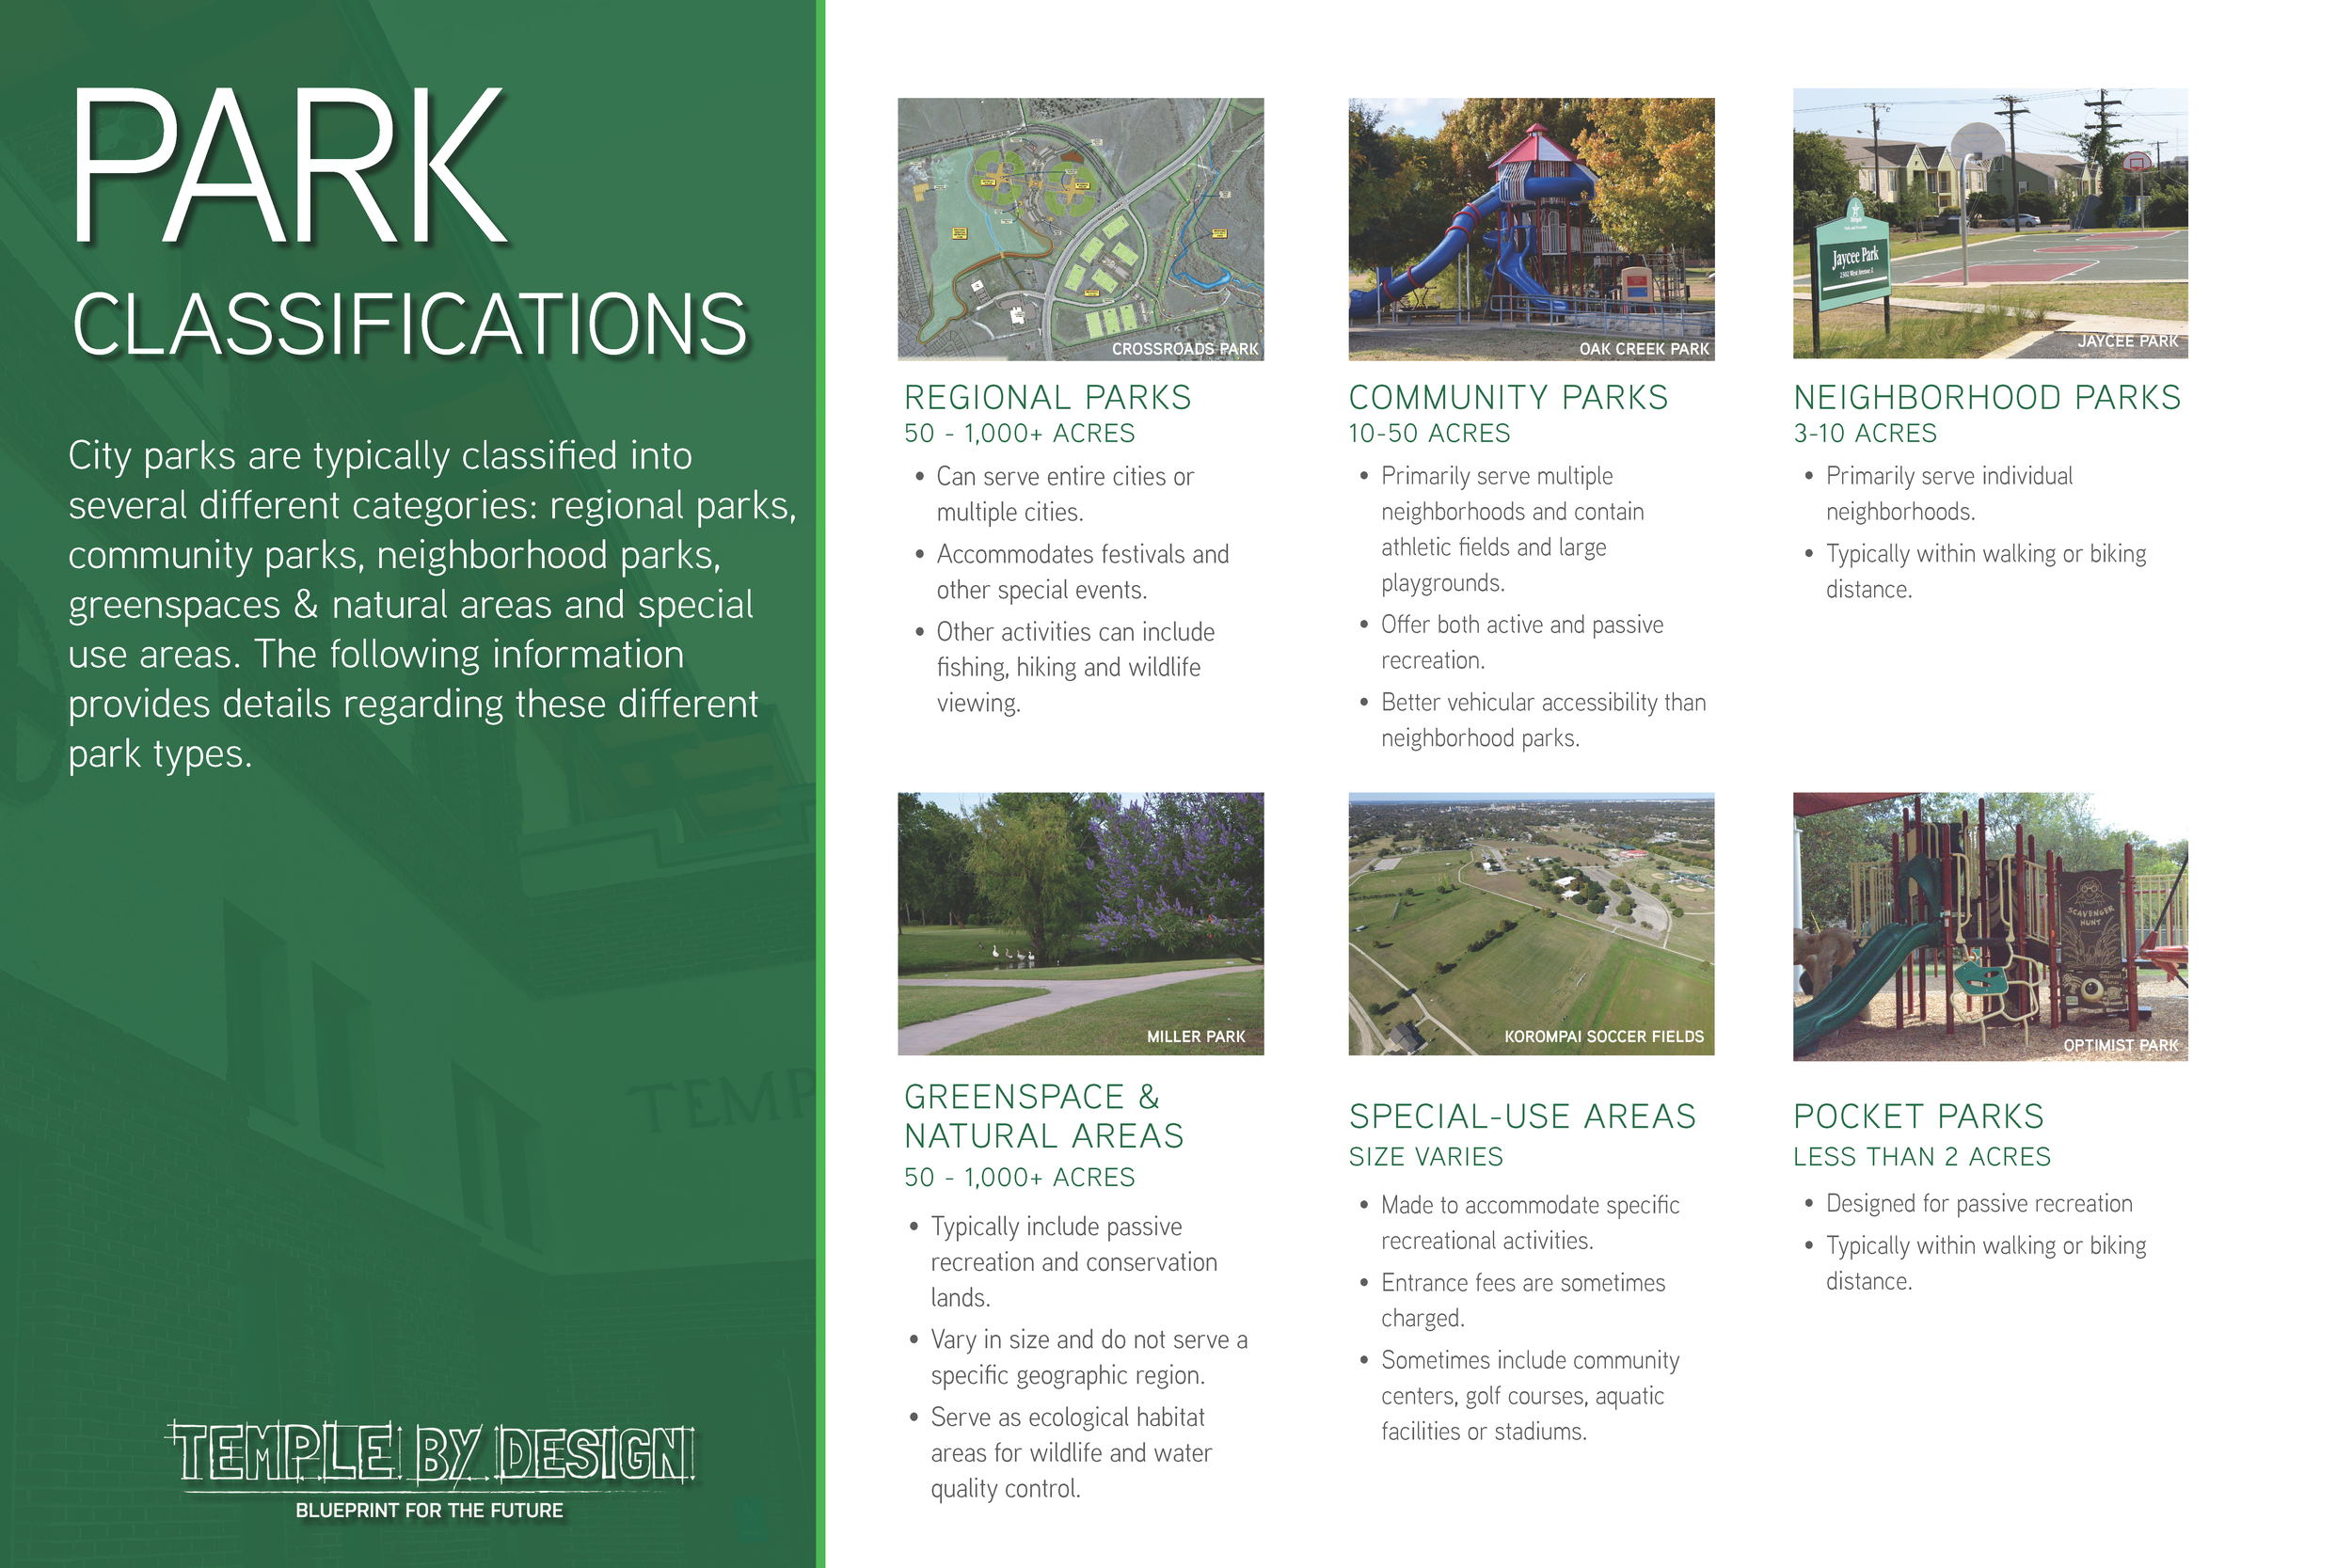 Joint Open House Boards Parks (24x36) Final Draft 5-21-19 Final_Page_15.png